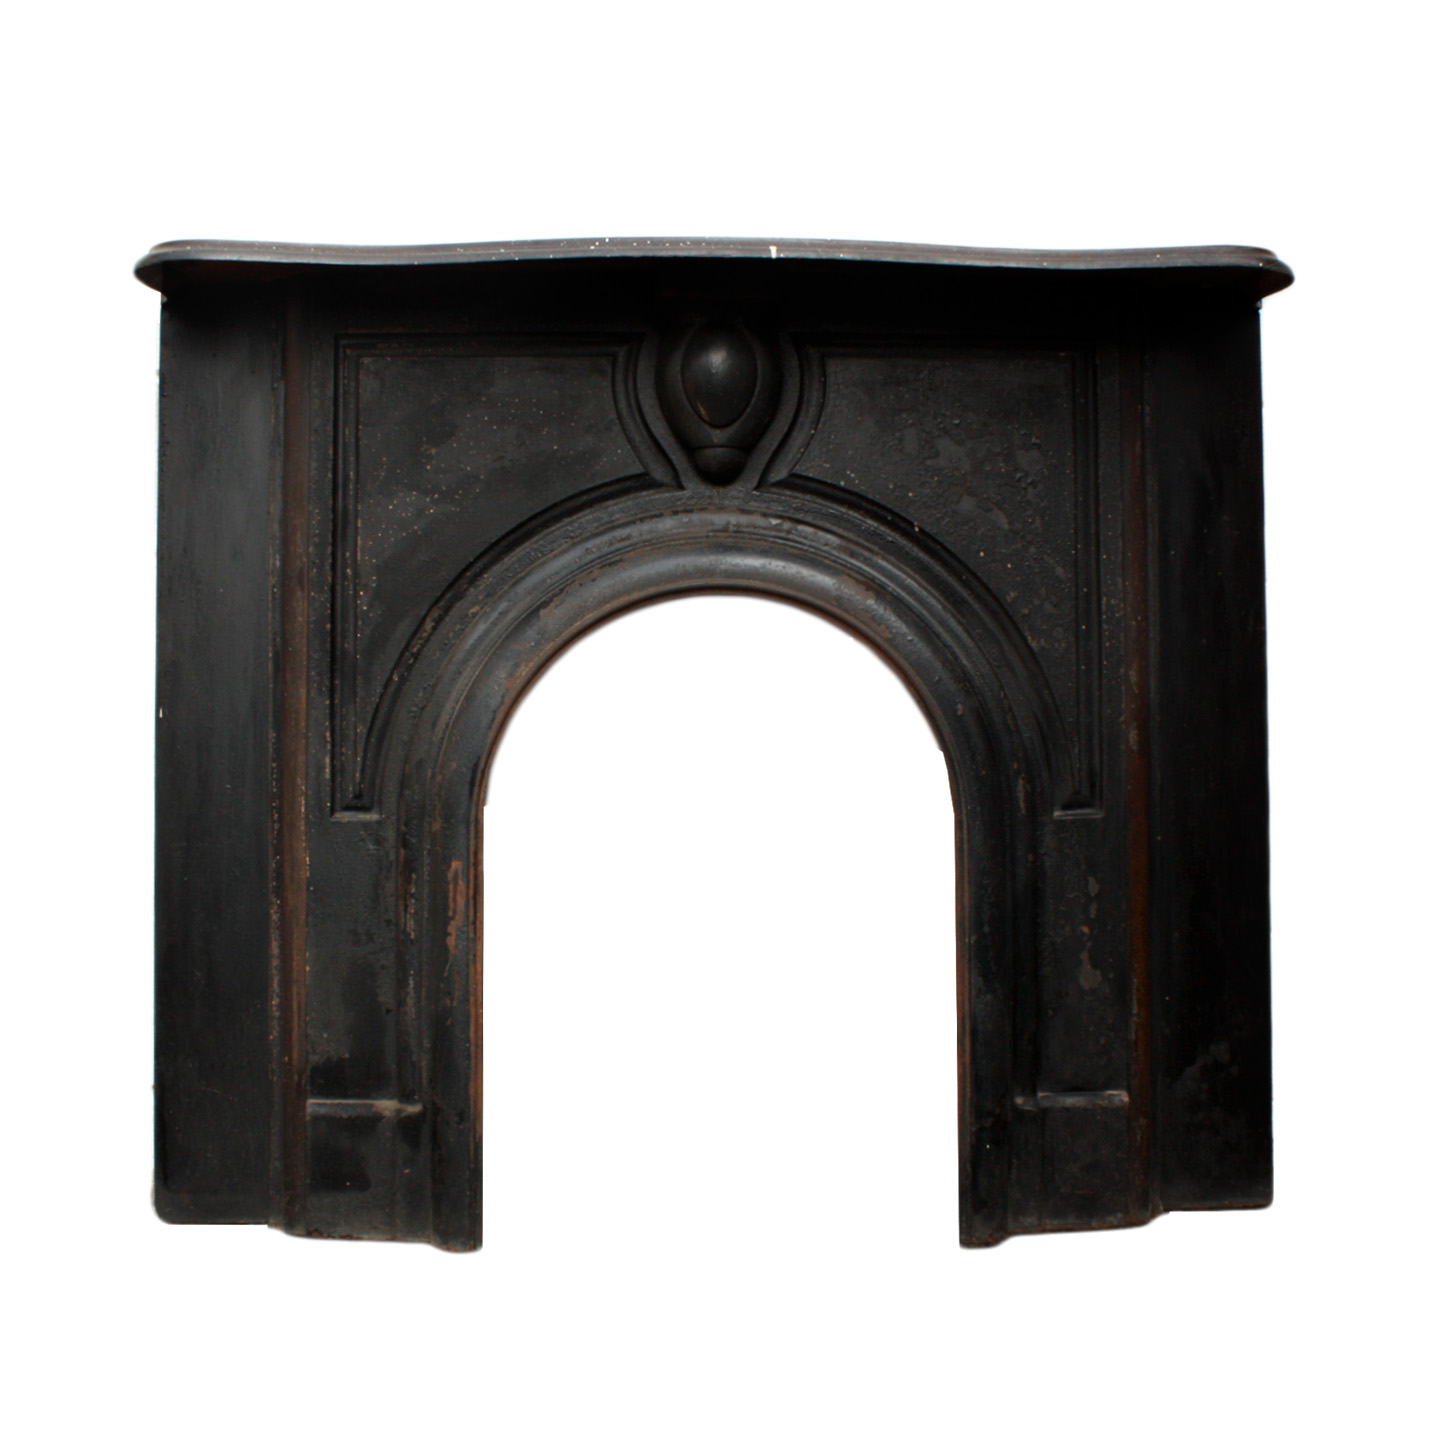 Antique fireplace mantels for sale - A Handsome Antique Cast Iron Fireplace Mantel With An Elegant Understated Cartouche Found In A Home In Michigan The Fireplace Features A Scalloped Shelf